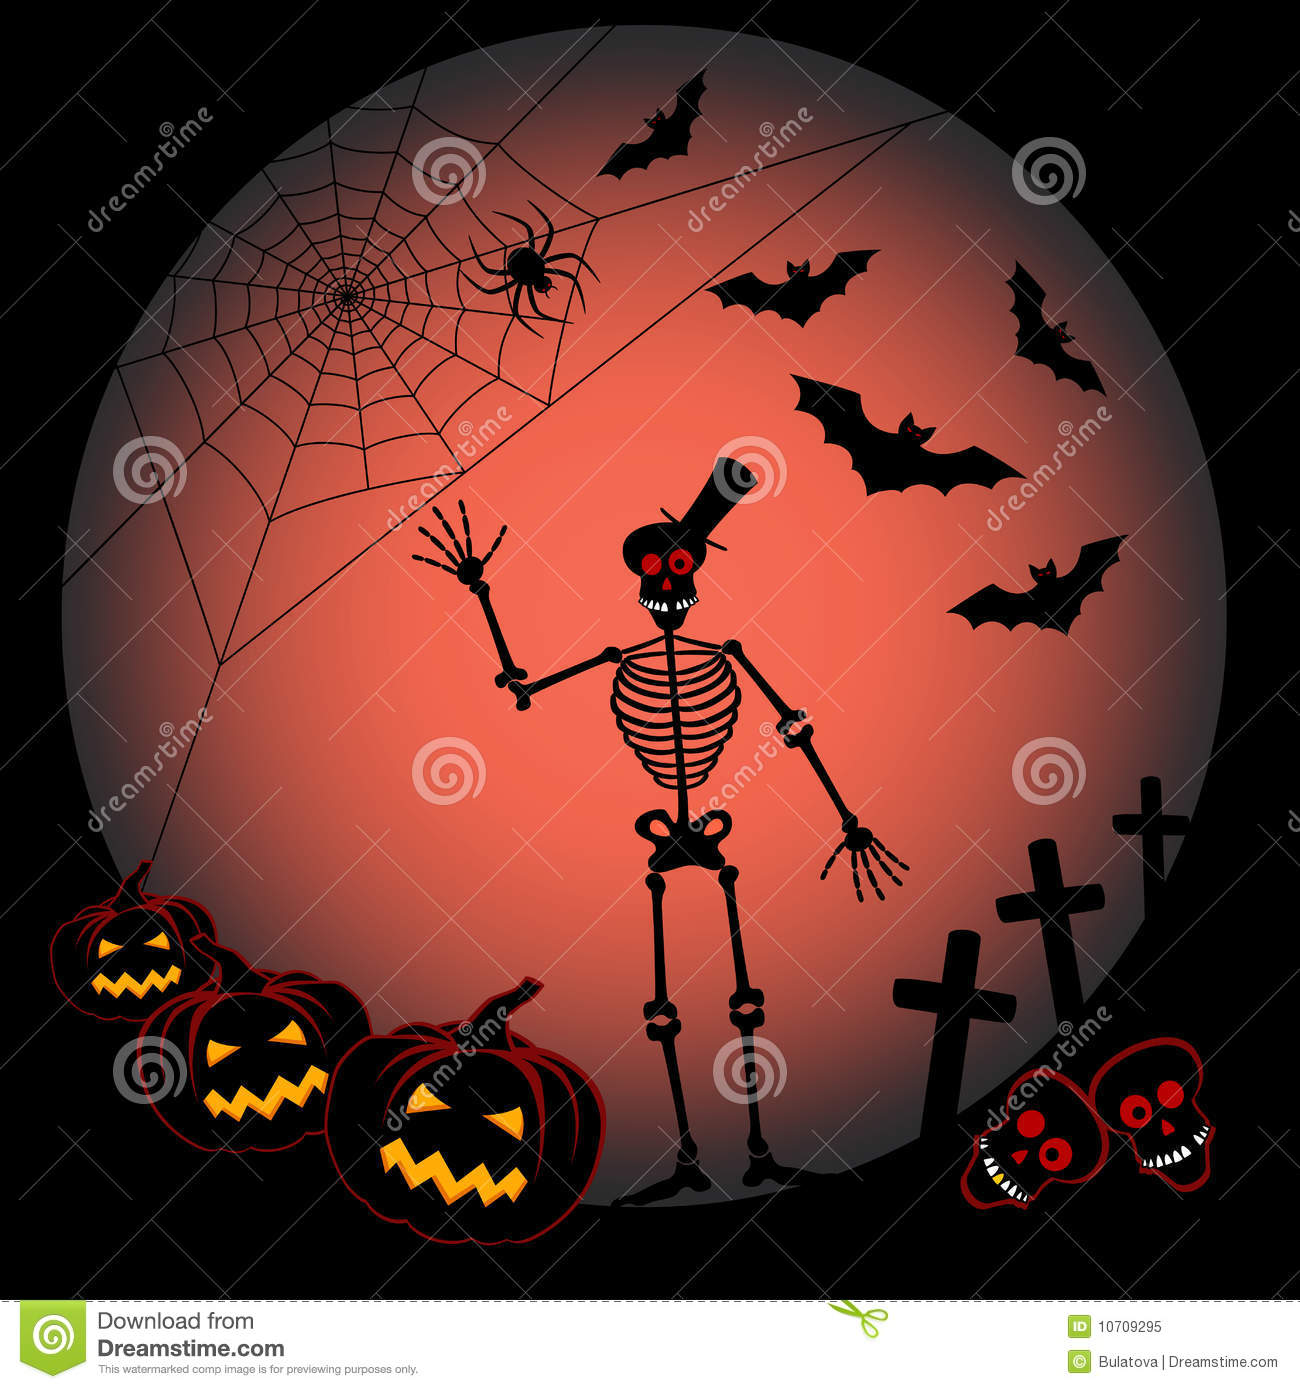 halloween illustration - Free Scary Halloween Images